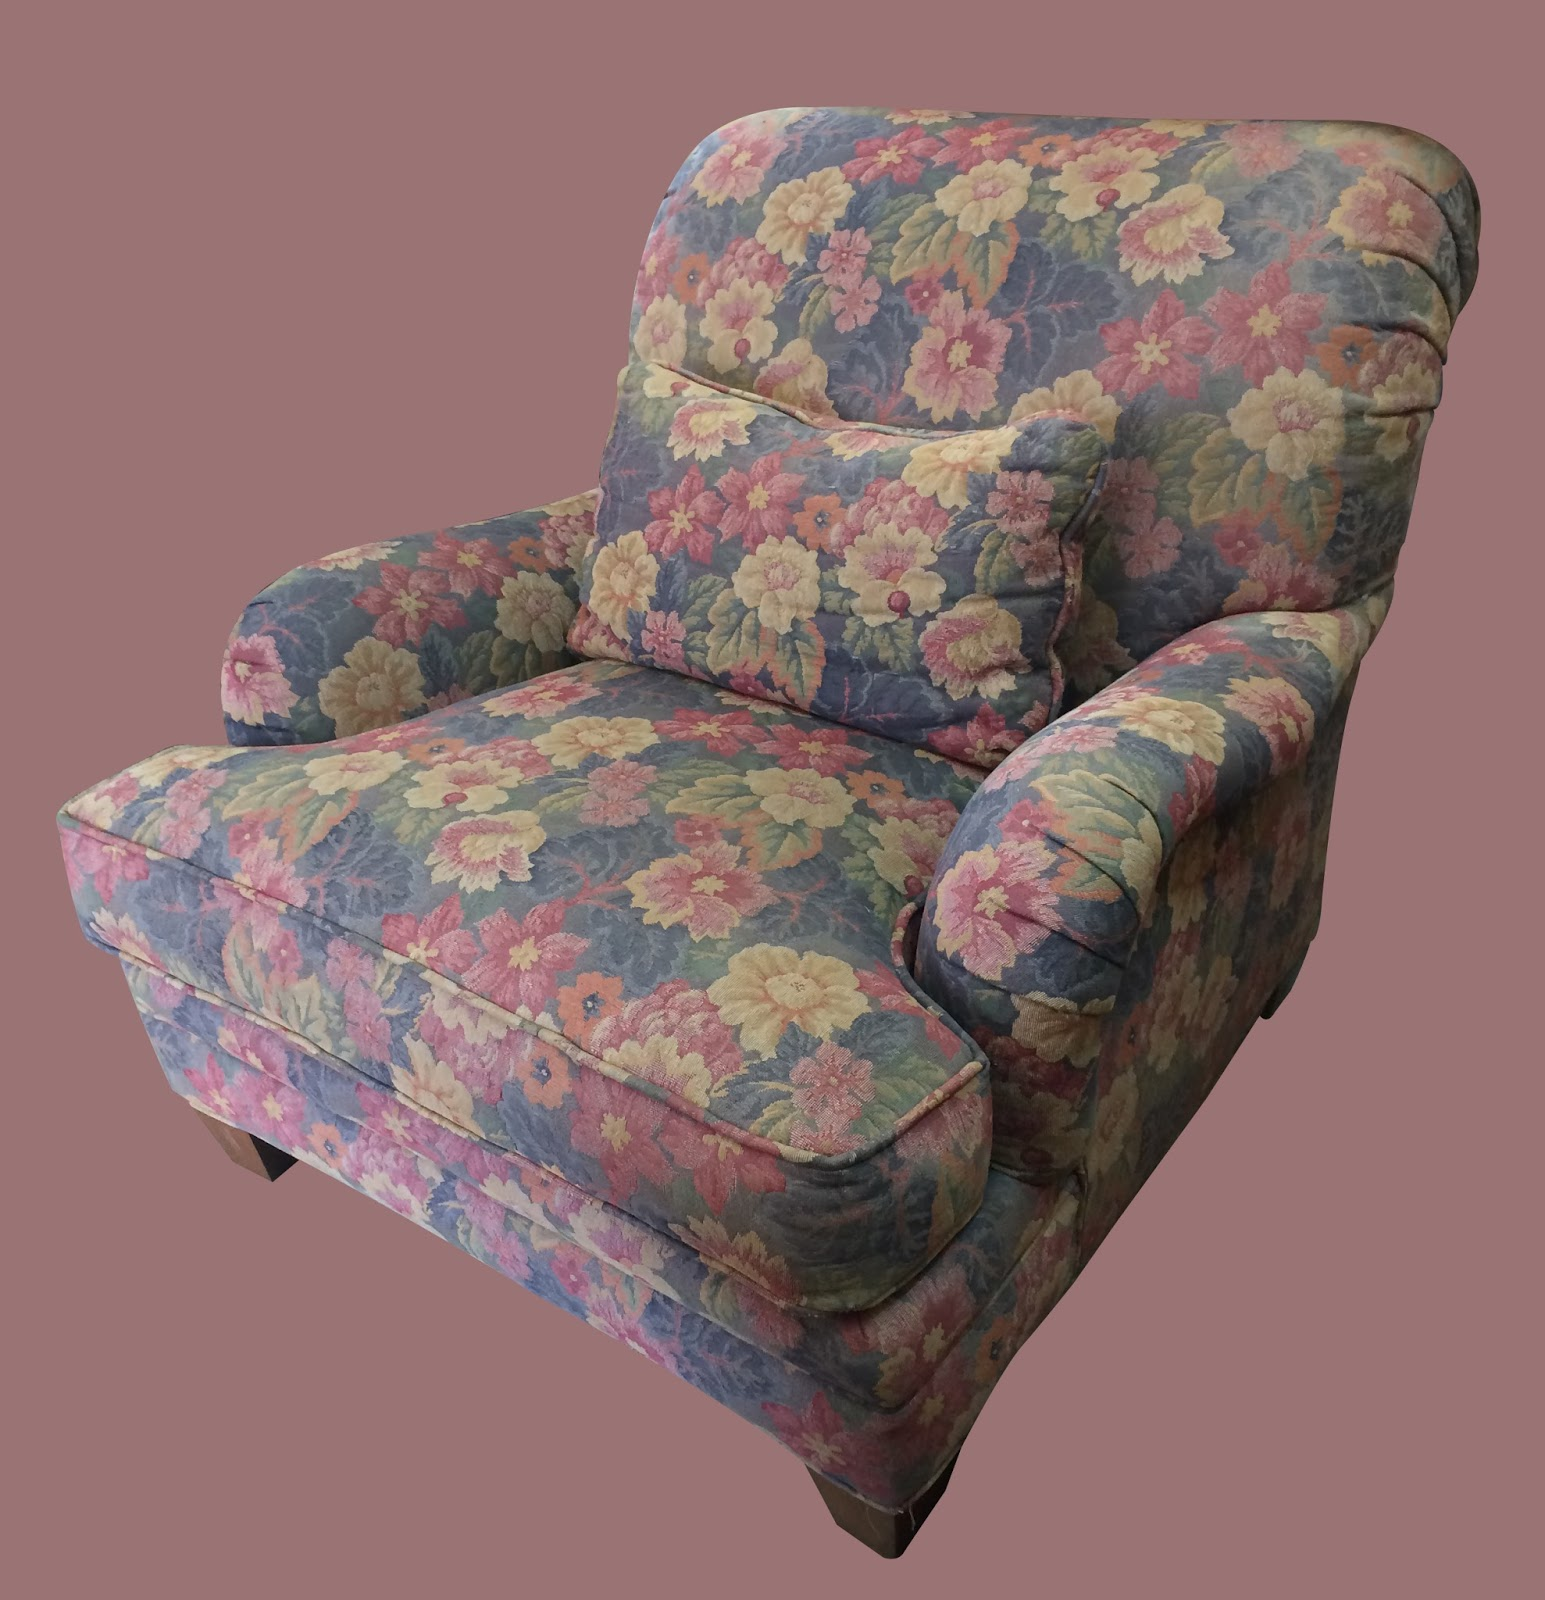 Floral Chair U0026 A Half   $85 $75 SOLD